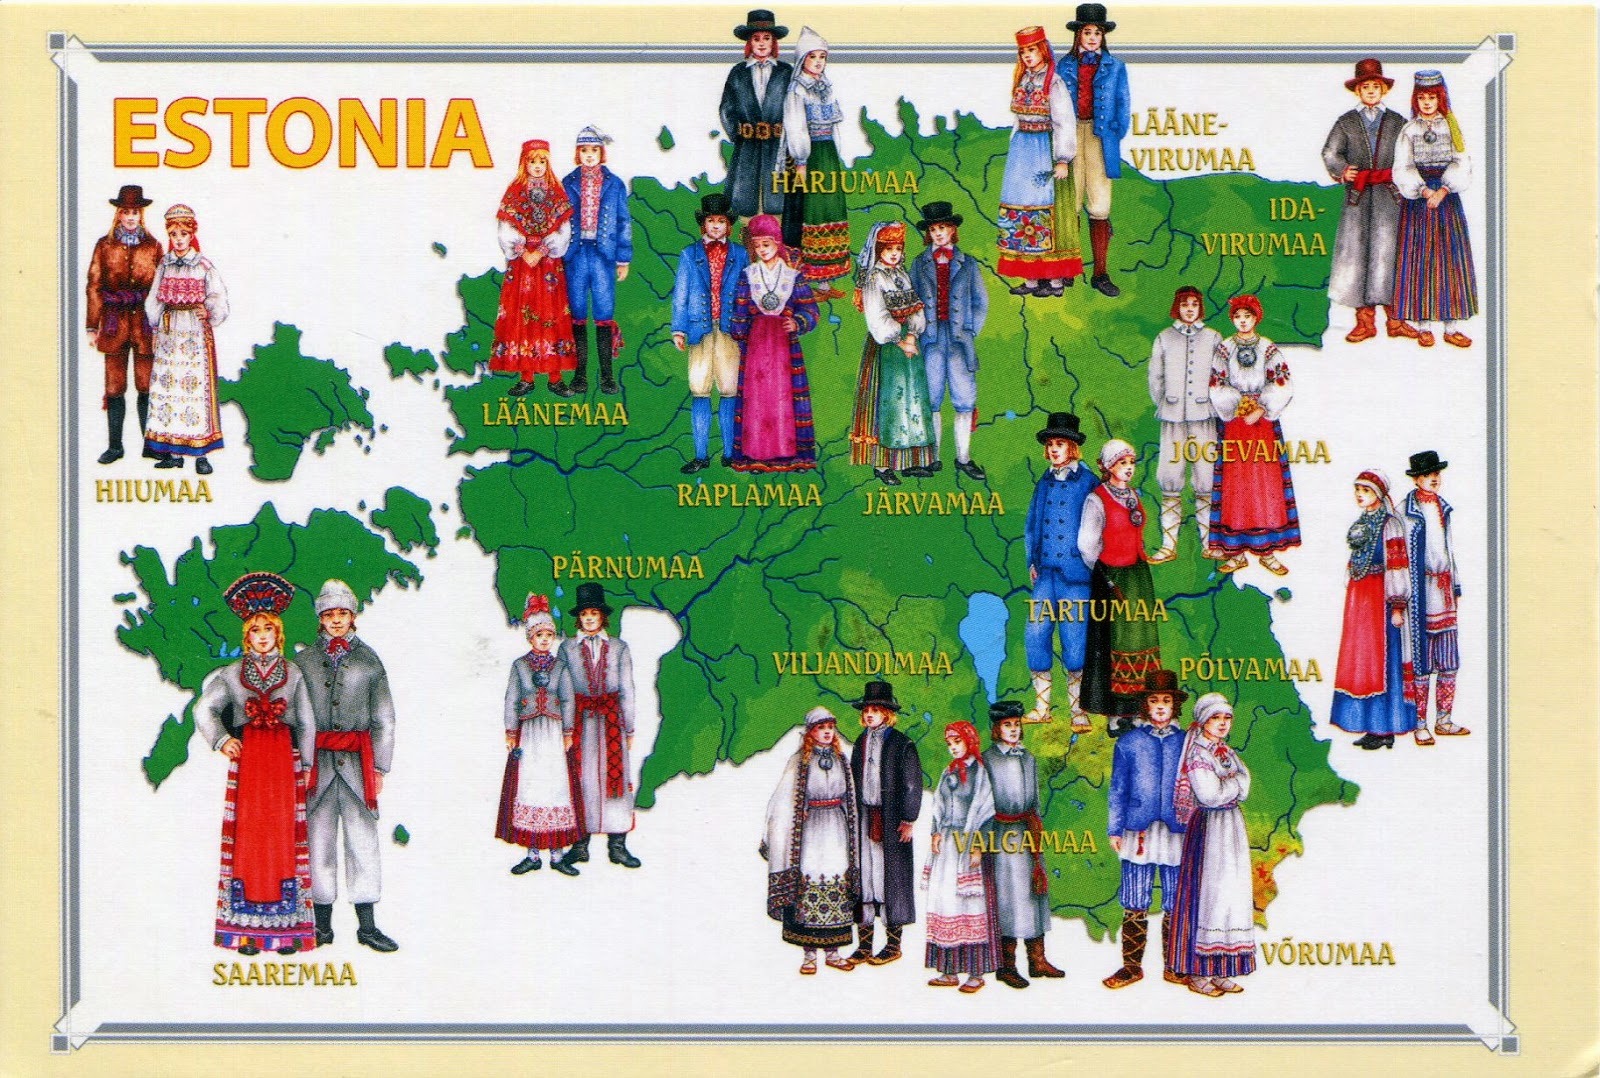 bae3a9d3b80ed38548f68c7b7c6cea7c estonia map of folk costumes